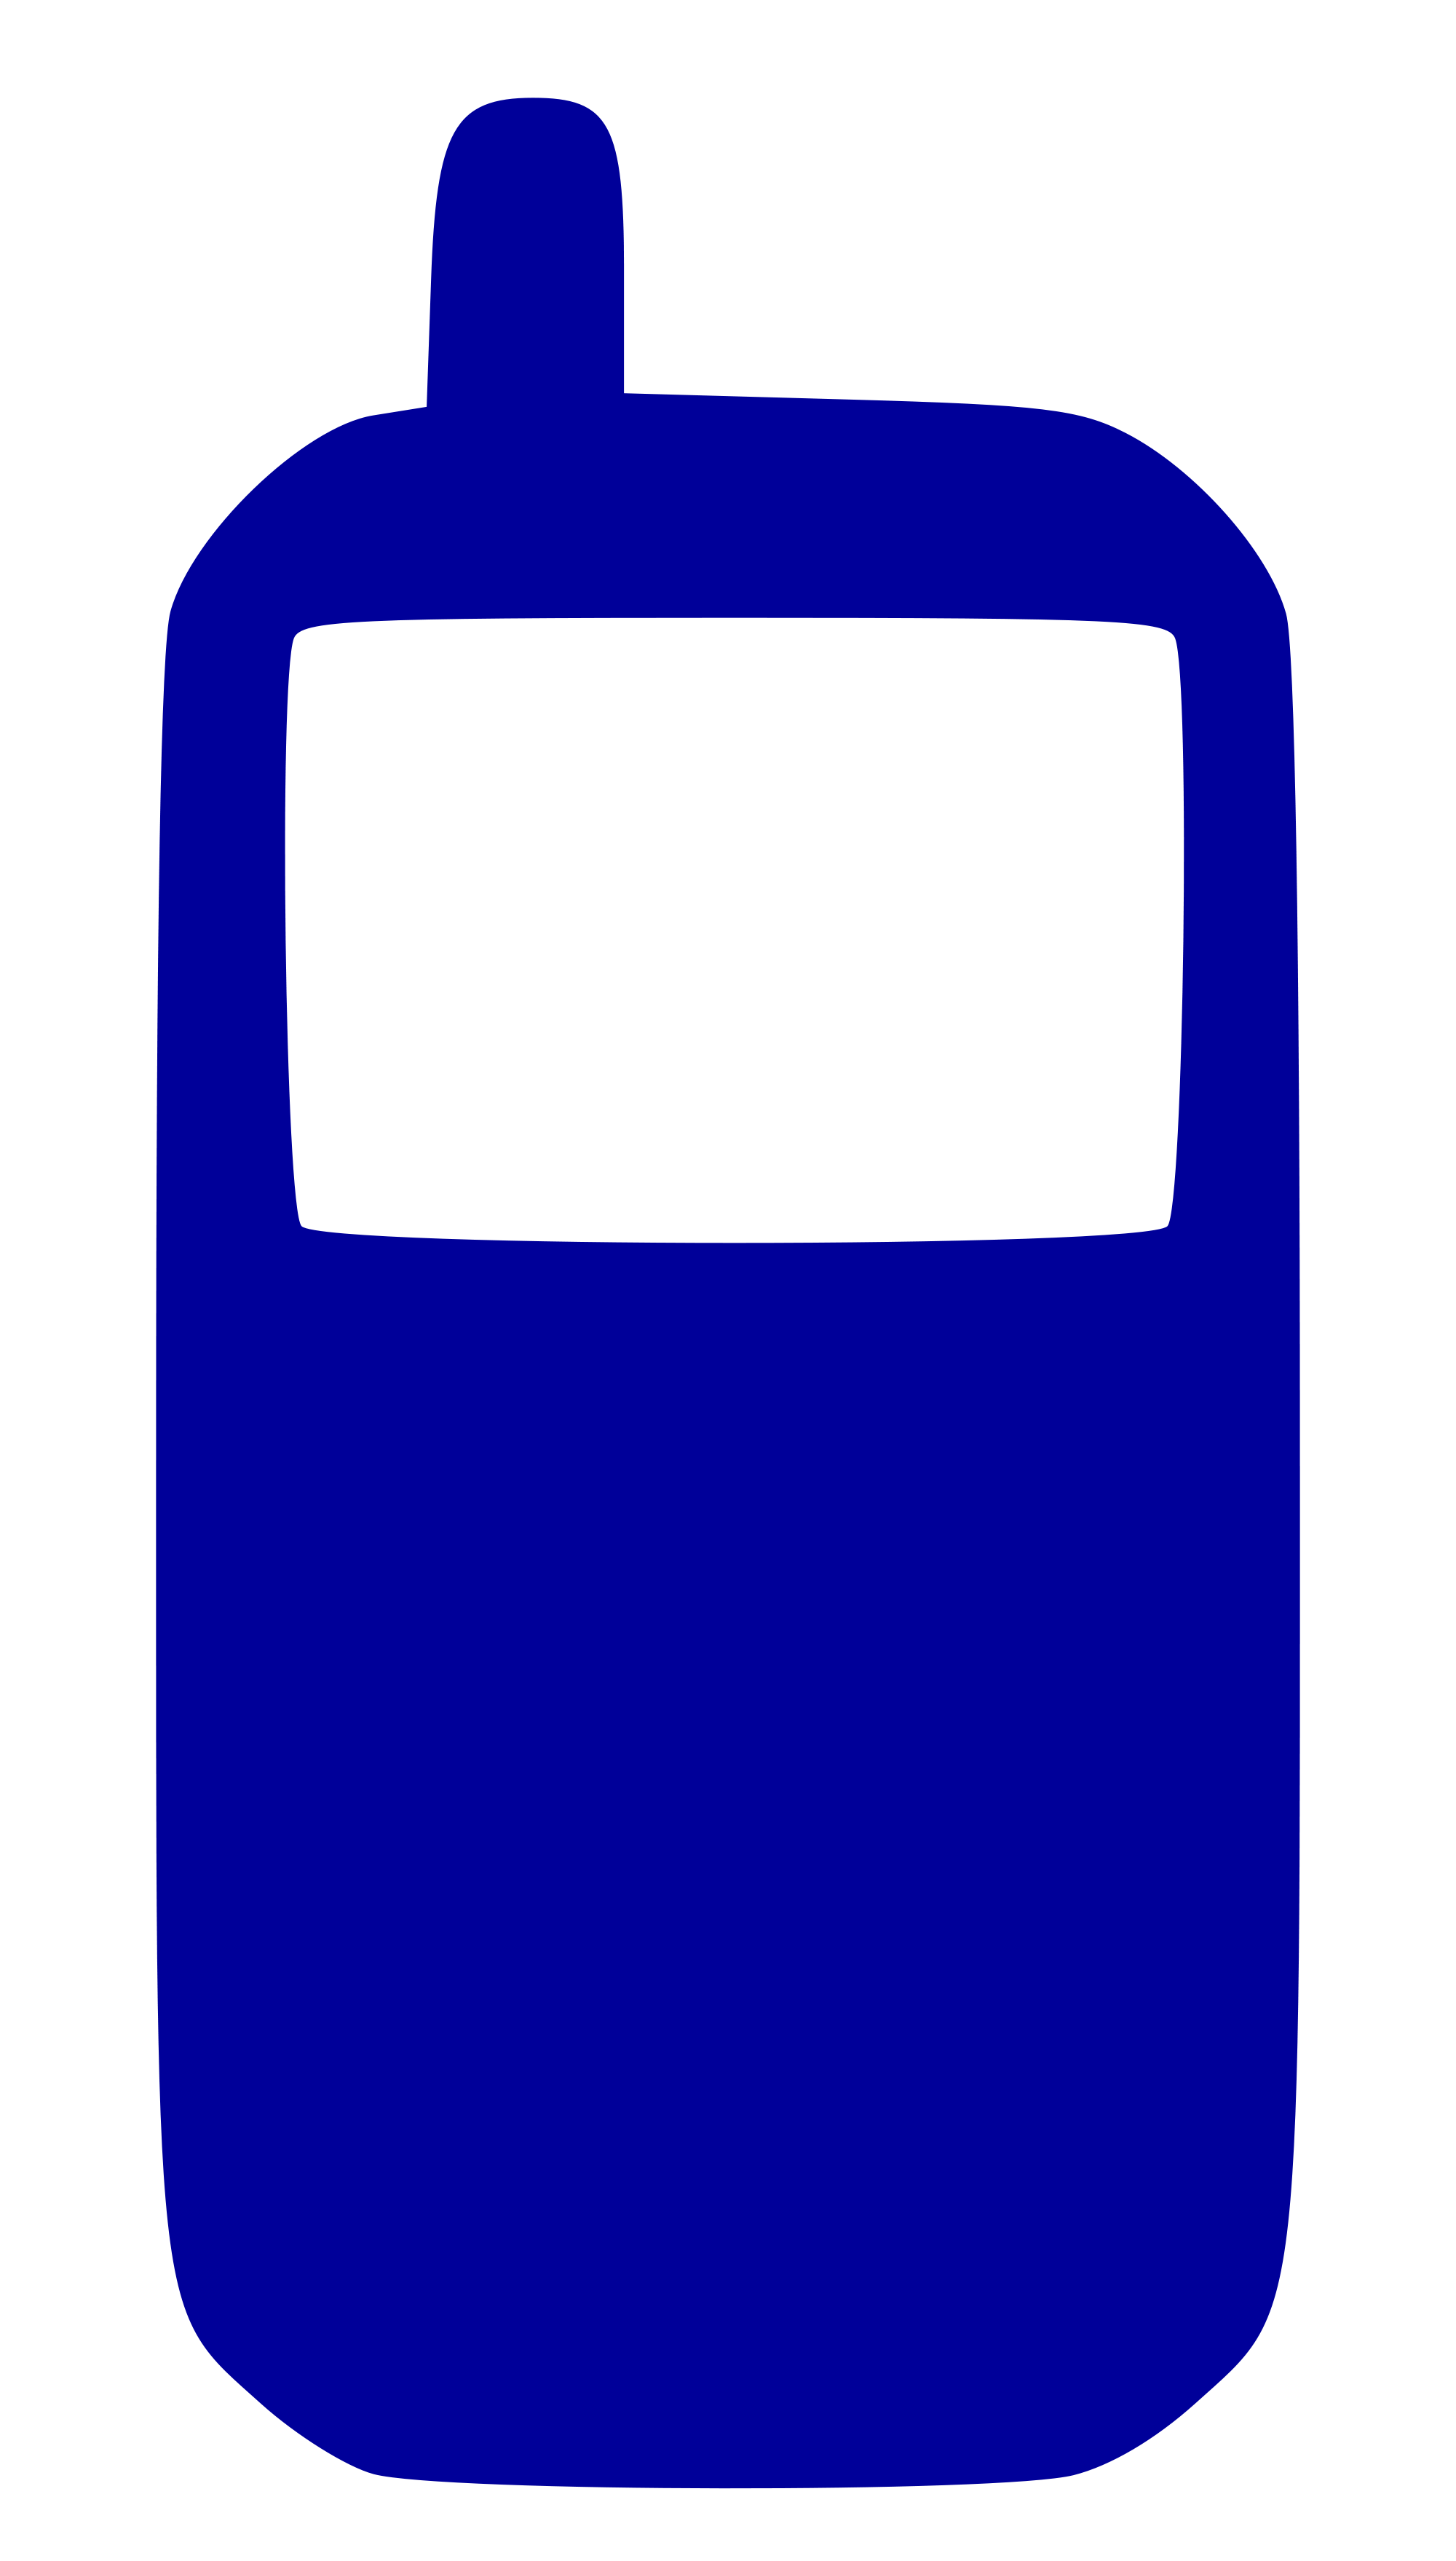 Cell phone logo png. File icon svg wikimedia